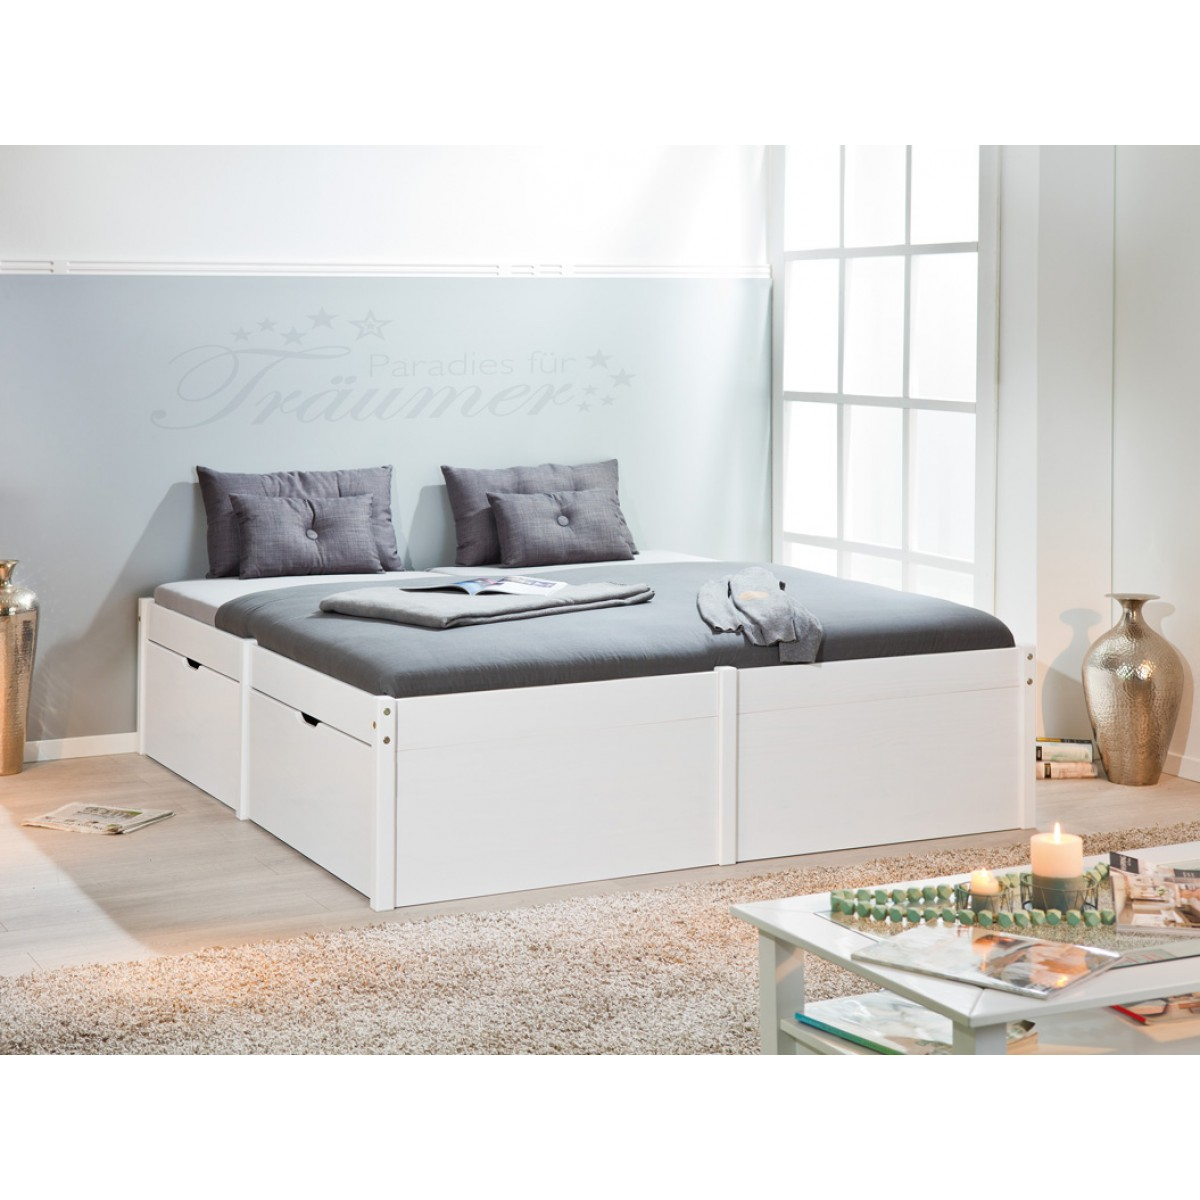 https://www.collyshop.it/media/catalog/product/cache/1/image/1200x1200/9df78eab33525d08d6e5fb8d27136e95/l/e/letto-matrimoniale-con-cassetti-in-legno-massello-bianco-moderno-2_1.jpg